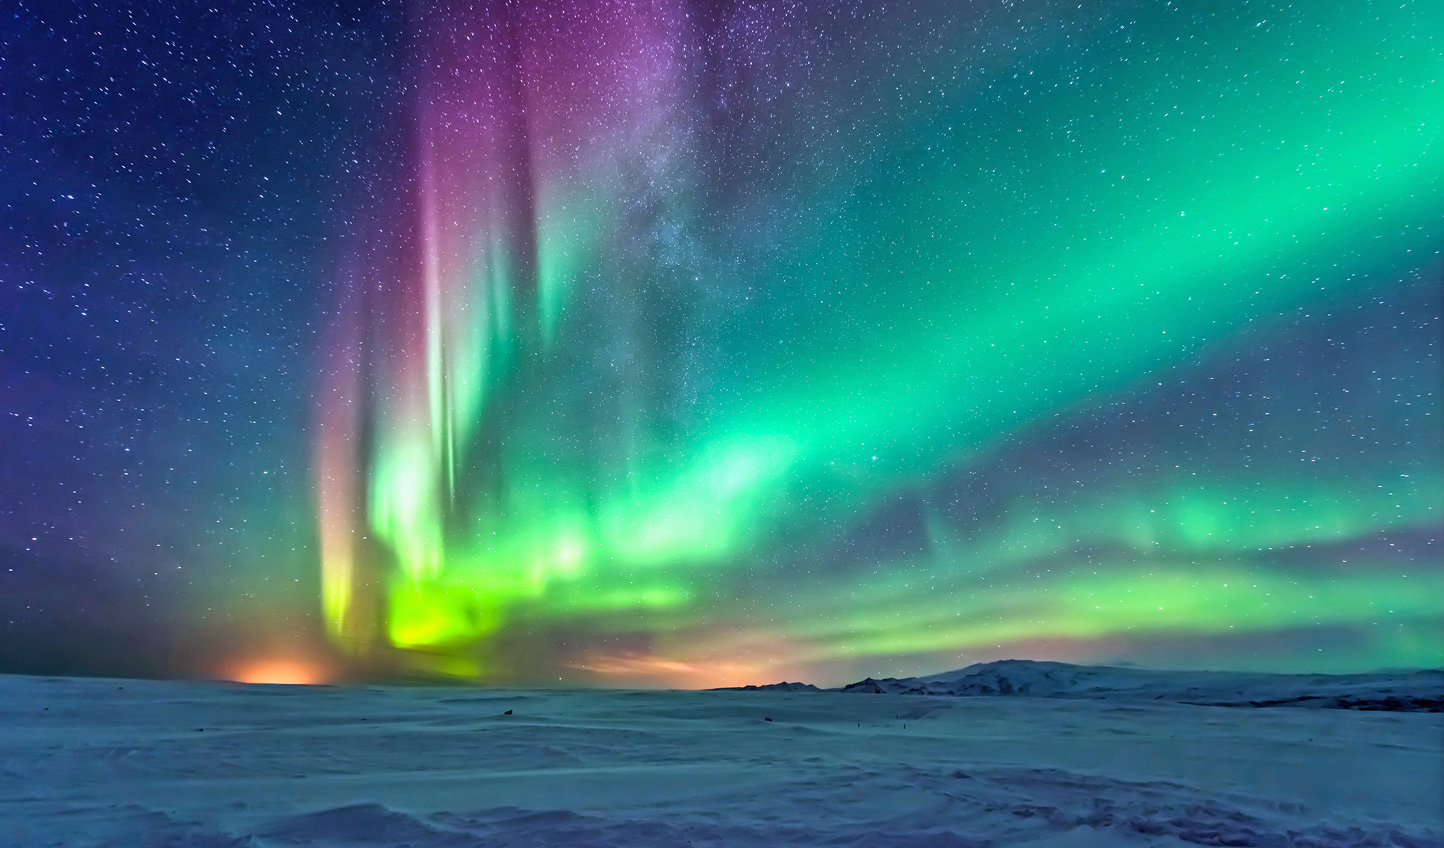 At night, seek out skies lit by the Northern Lights